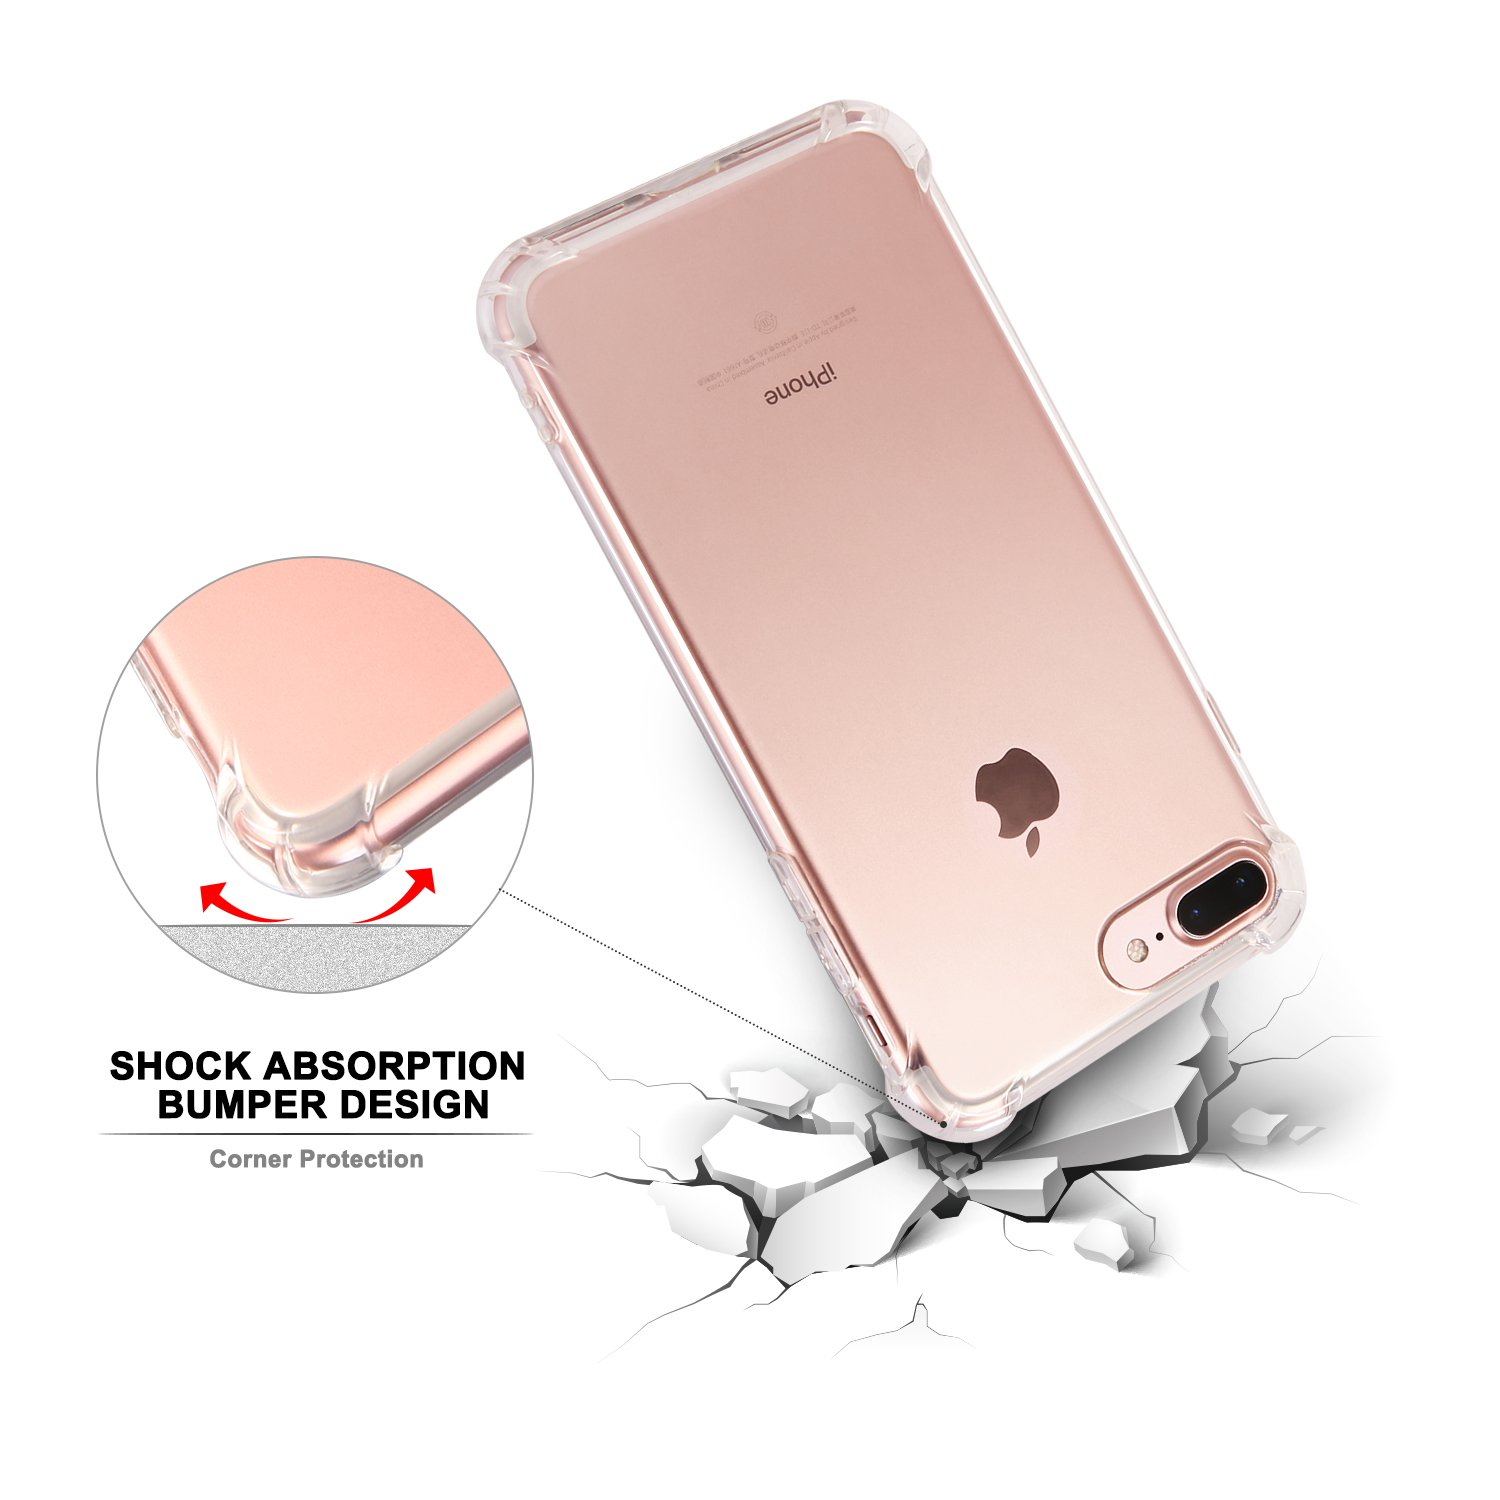 iPhone 7 Plus Case, iPhone 8 Plus Case, CLONG Crystal Clear Shockproof Case Bumper Transparent Silicon TPU Cover for Apple iPhone 7 Plus(2016) 5.5\